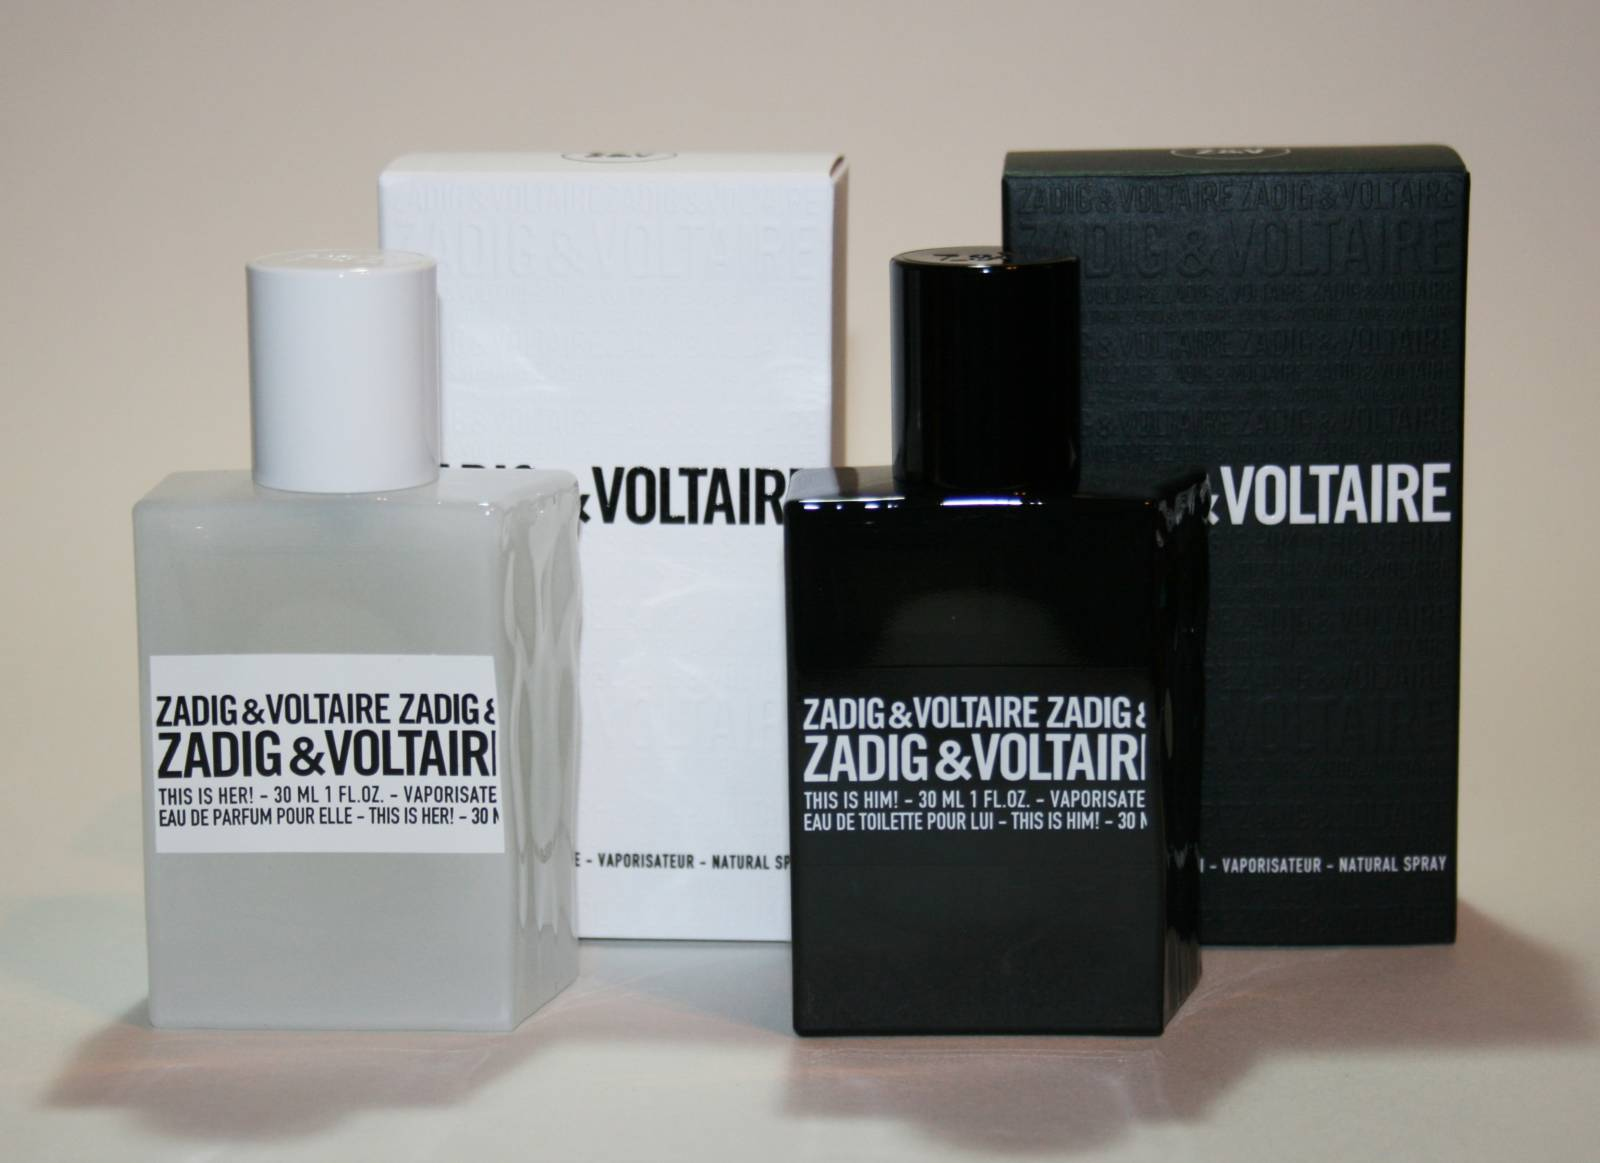 zadig voltaire this is her this is him fragrance review. Black Bedroom Furniture Sets. Home Design Ideas